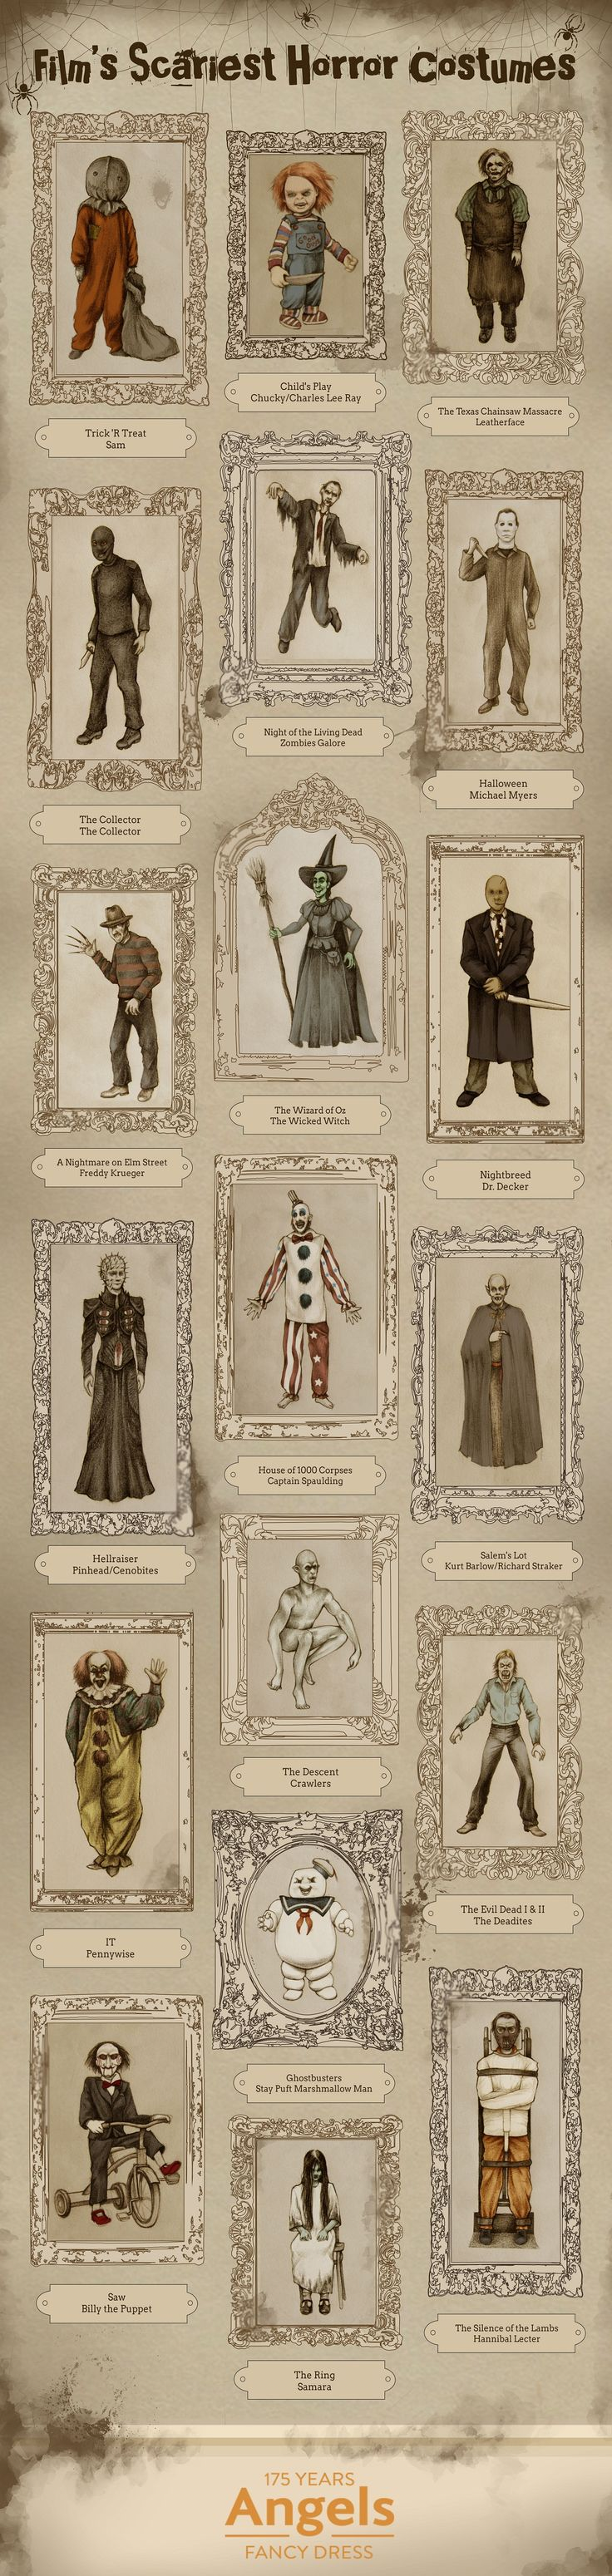 Film's Scariest Horror Costumes #infographic #HorrorCostumes